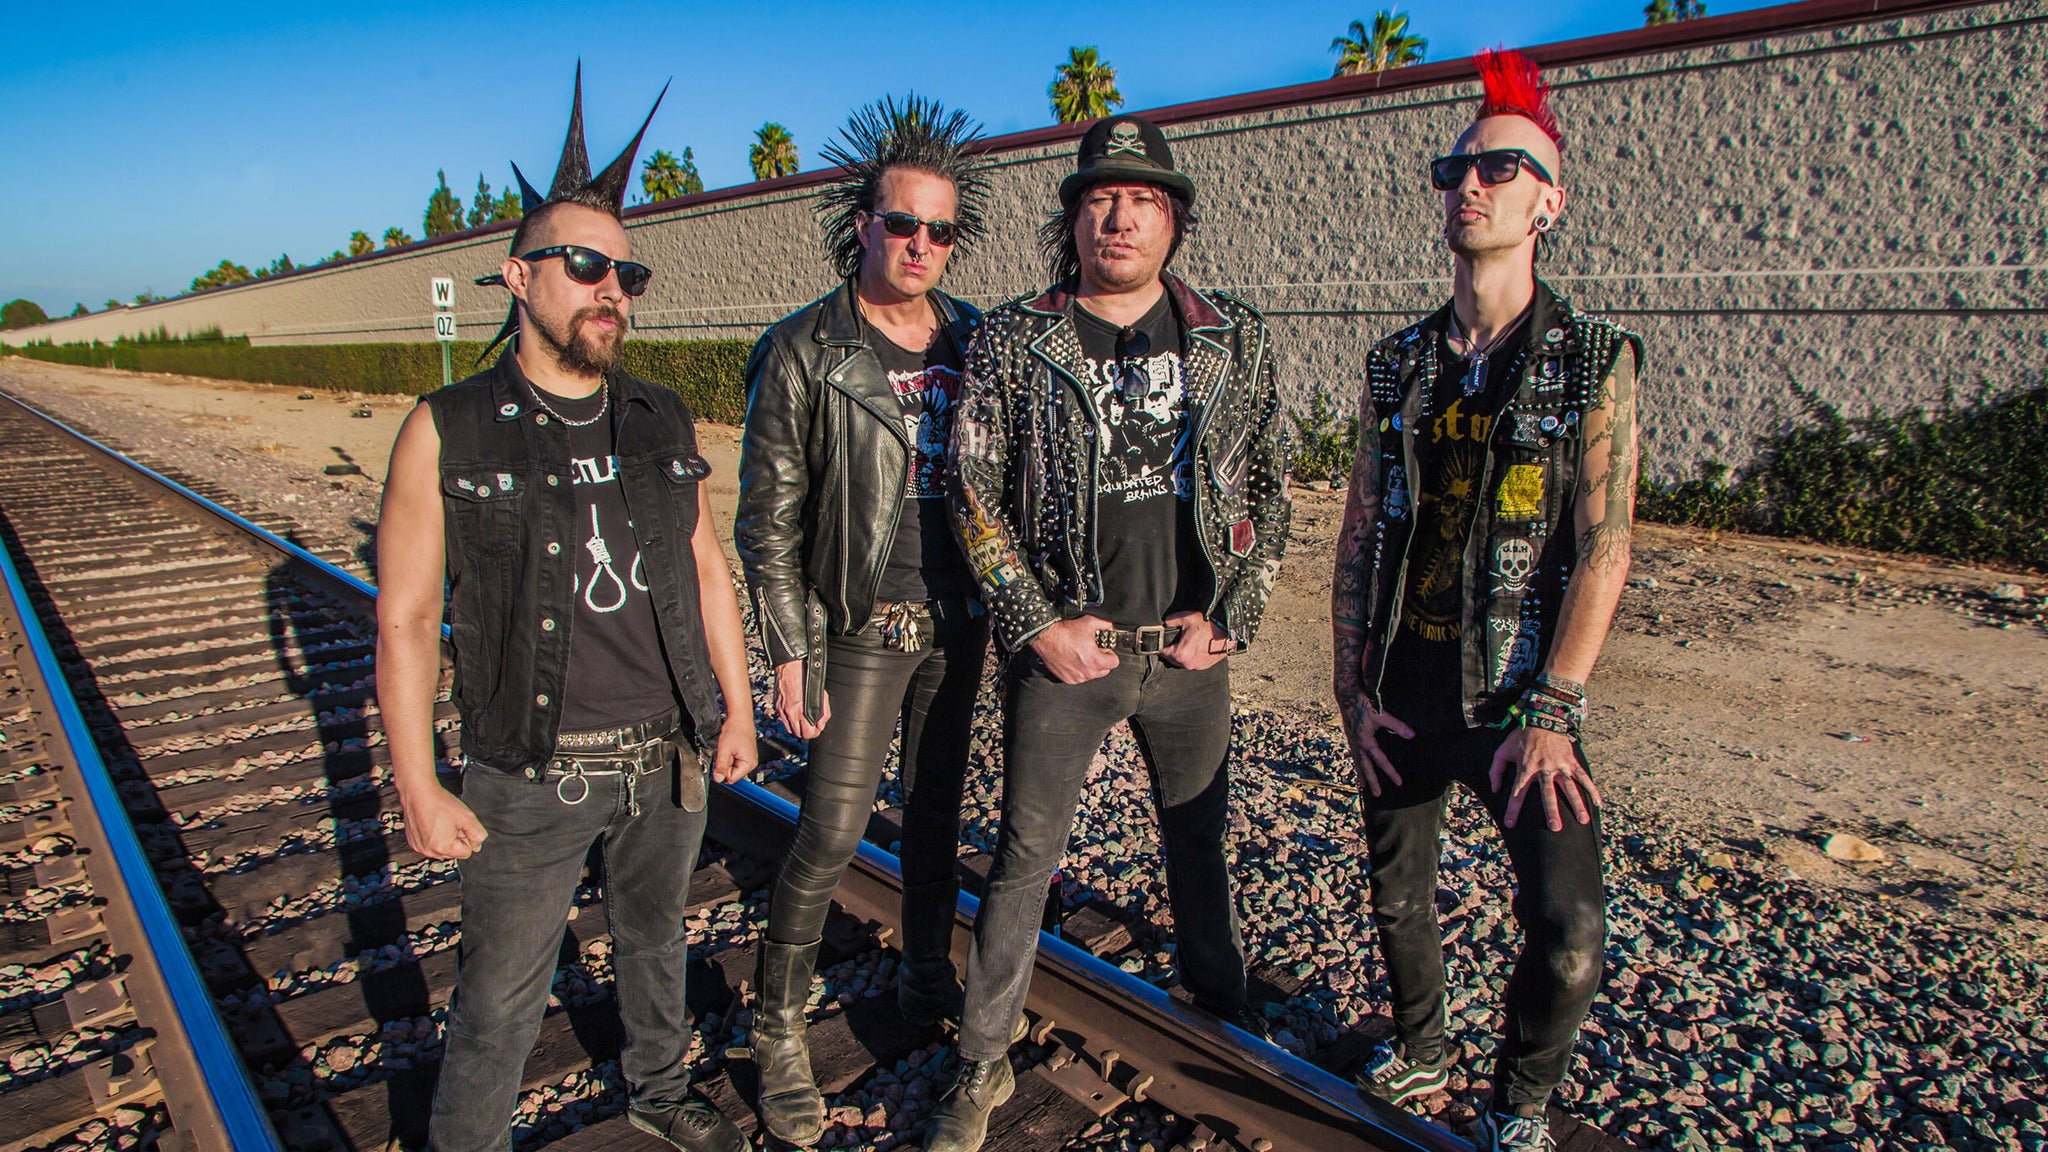 The Exploited - 40th Anniversary Tour at Ace of Spades